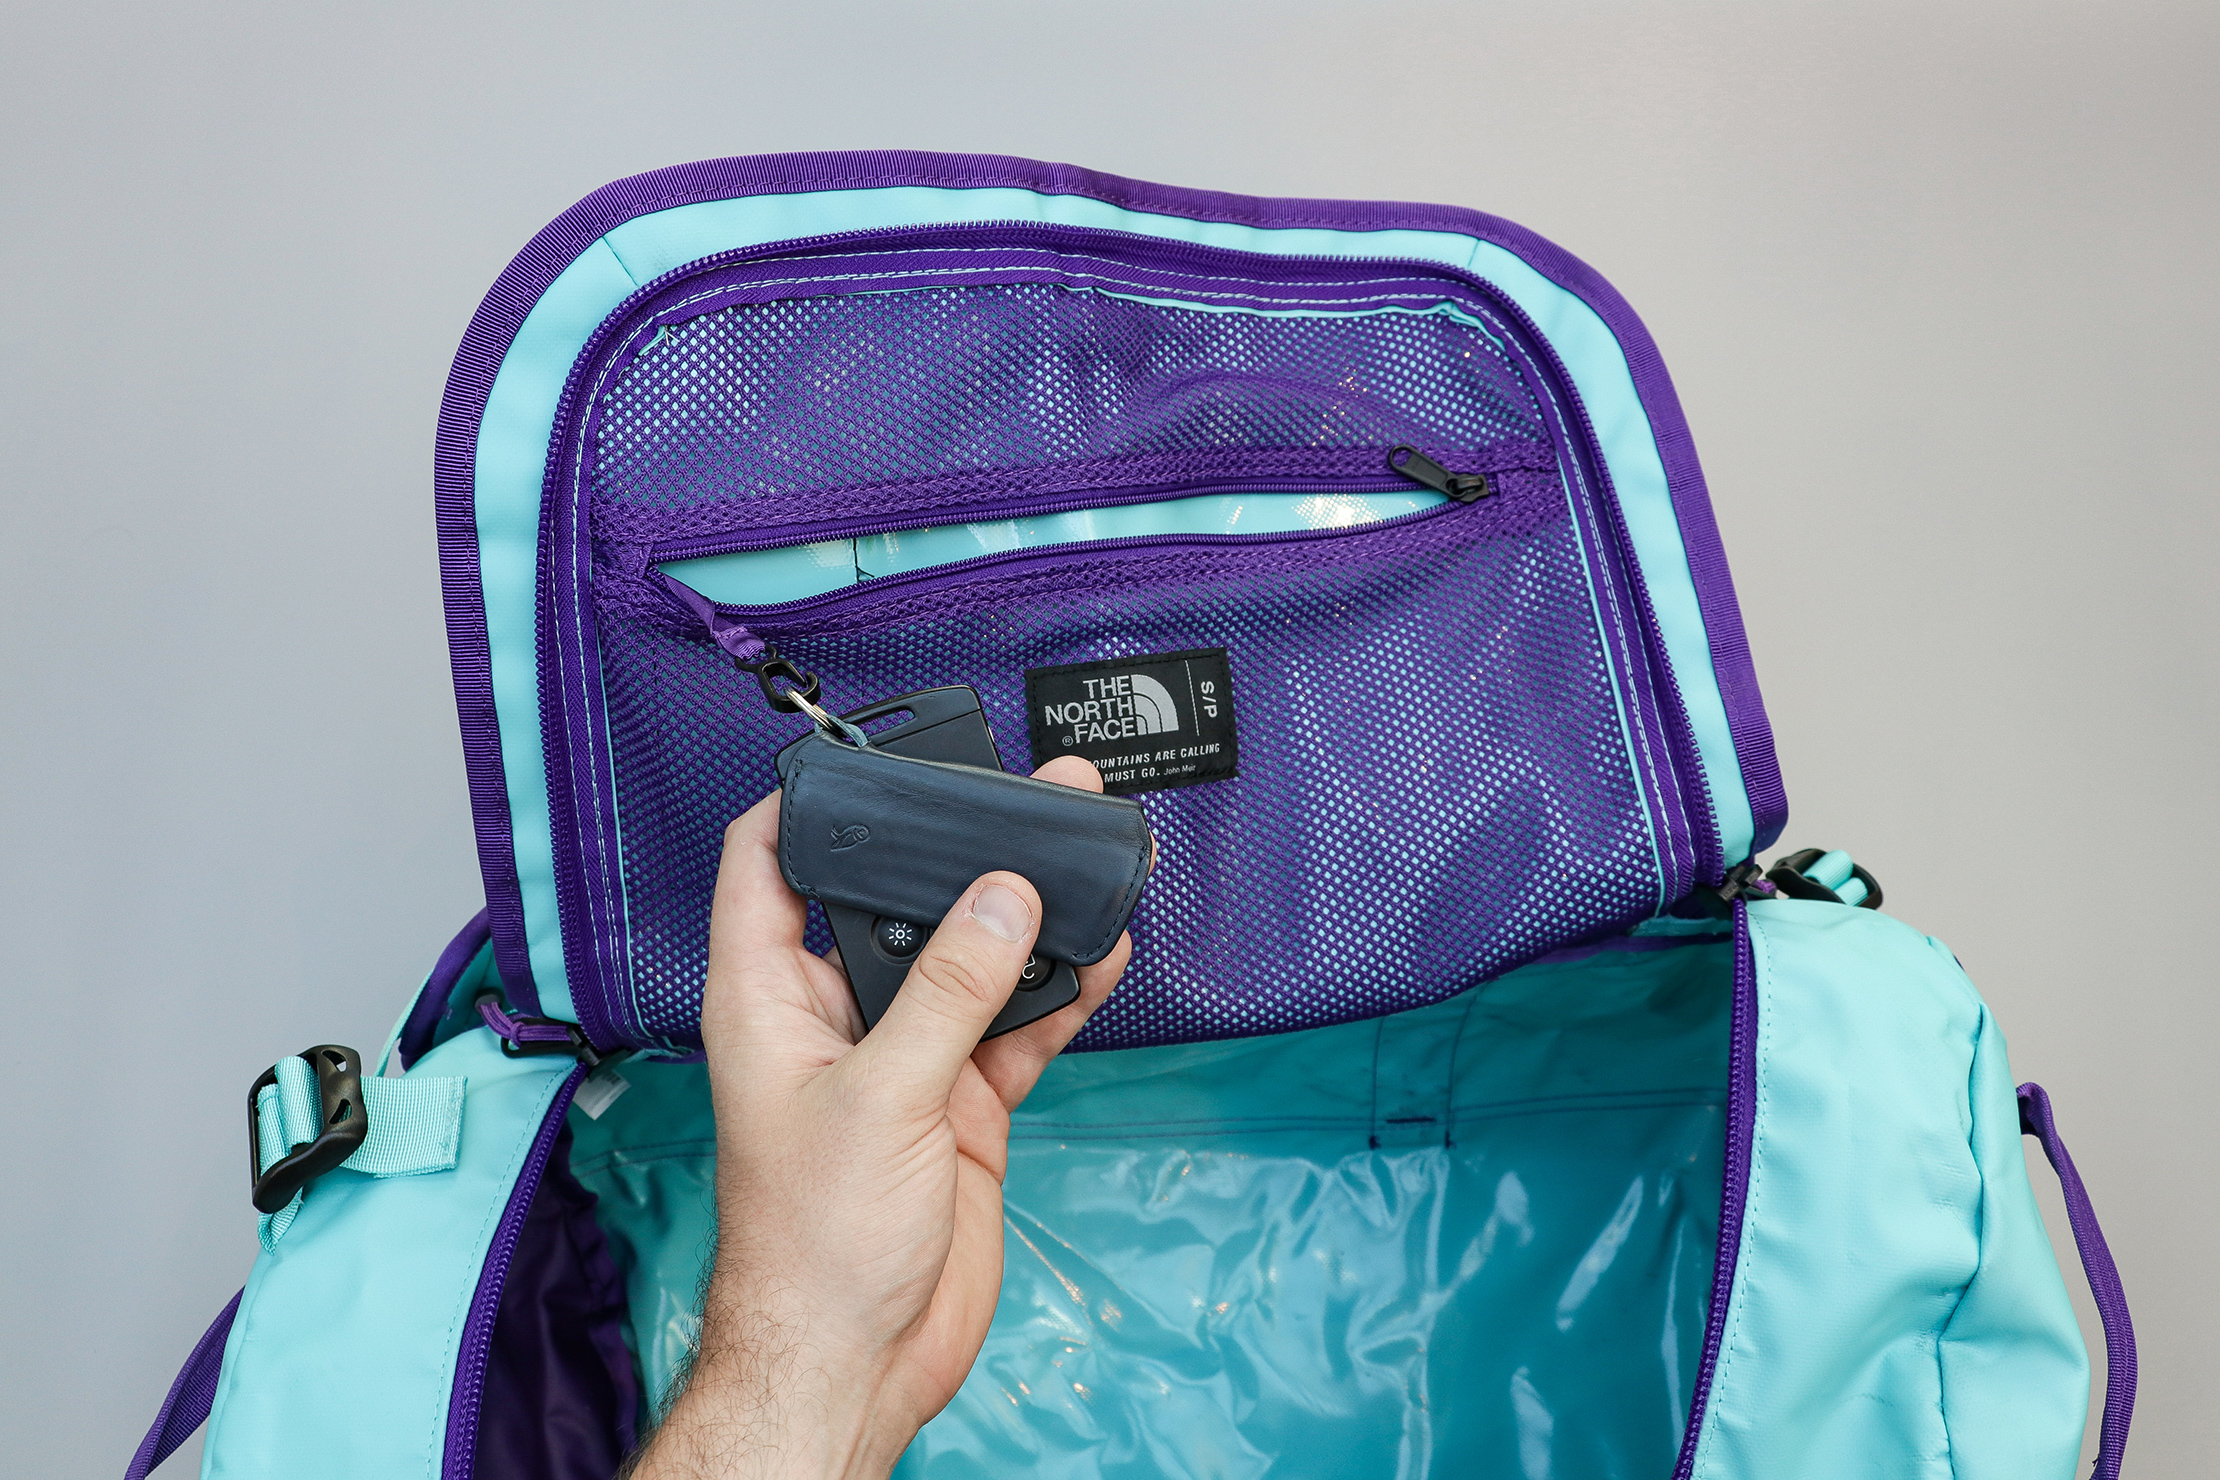 The North Face Base Camp Duffel Internal Mesh Pocket And Key Clip